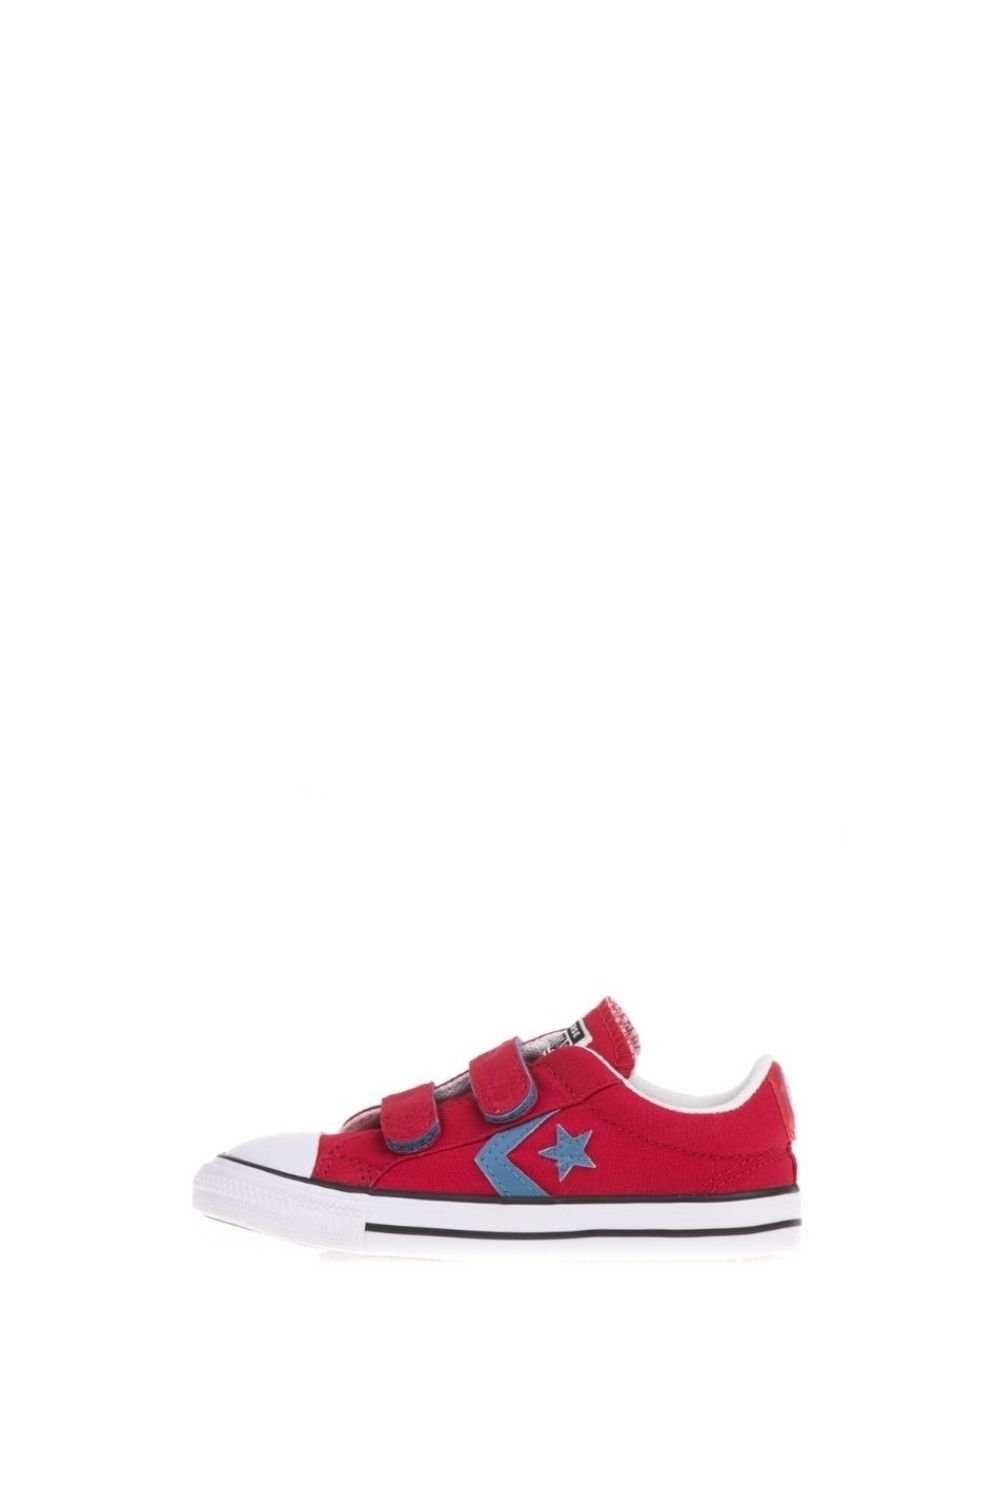 CONVERSE – Βρεφικά sneakers CONVERSE Star Player 2V Ox κόκκινα